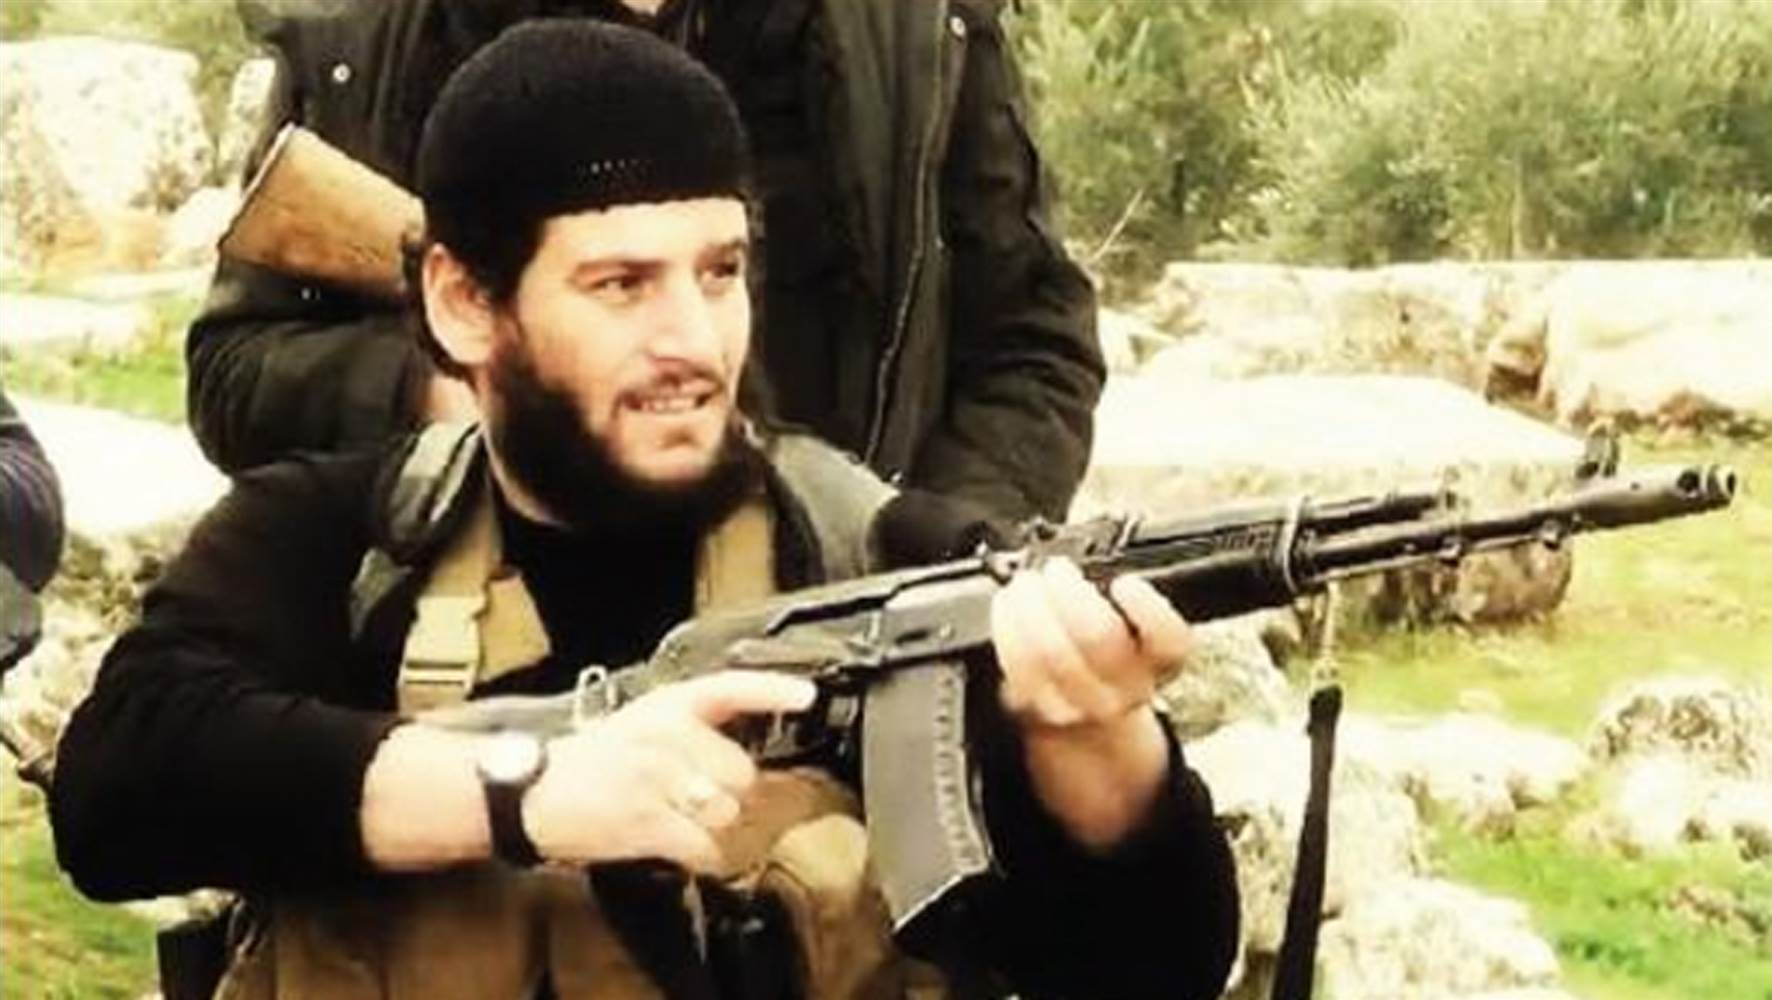 How ISIS Syrian Leader's Death to Affect Situation in Aleppo?